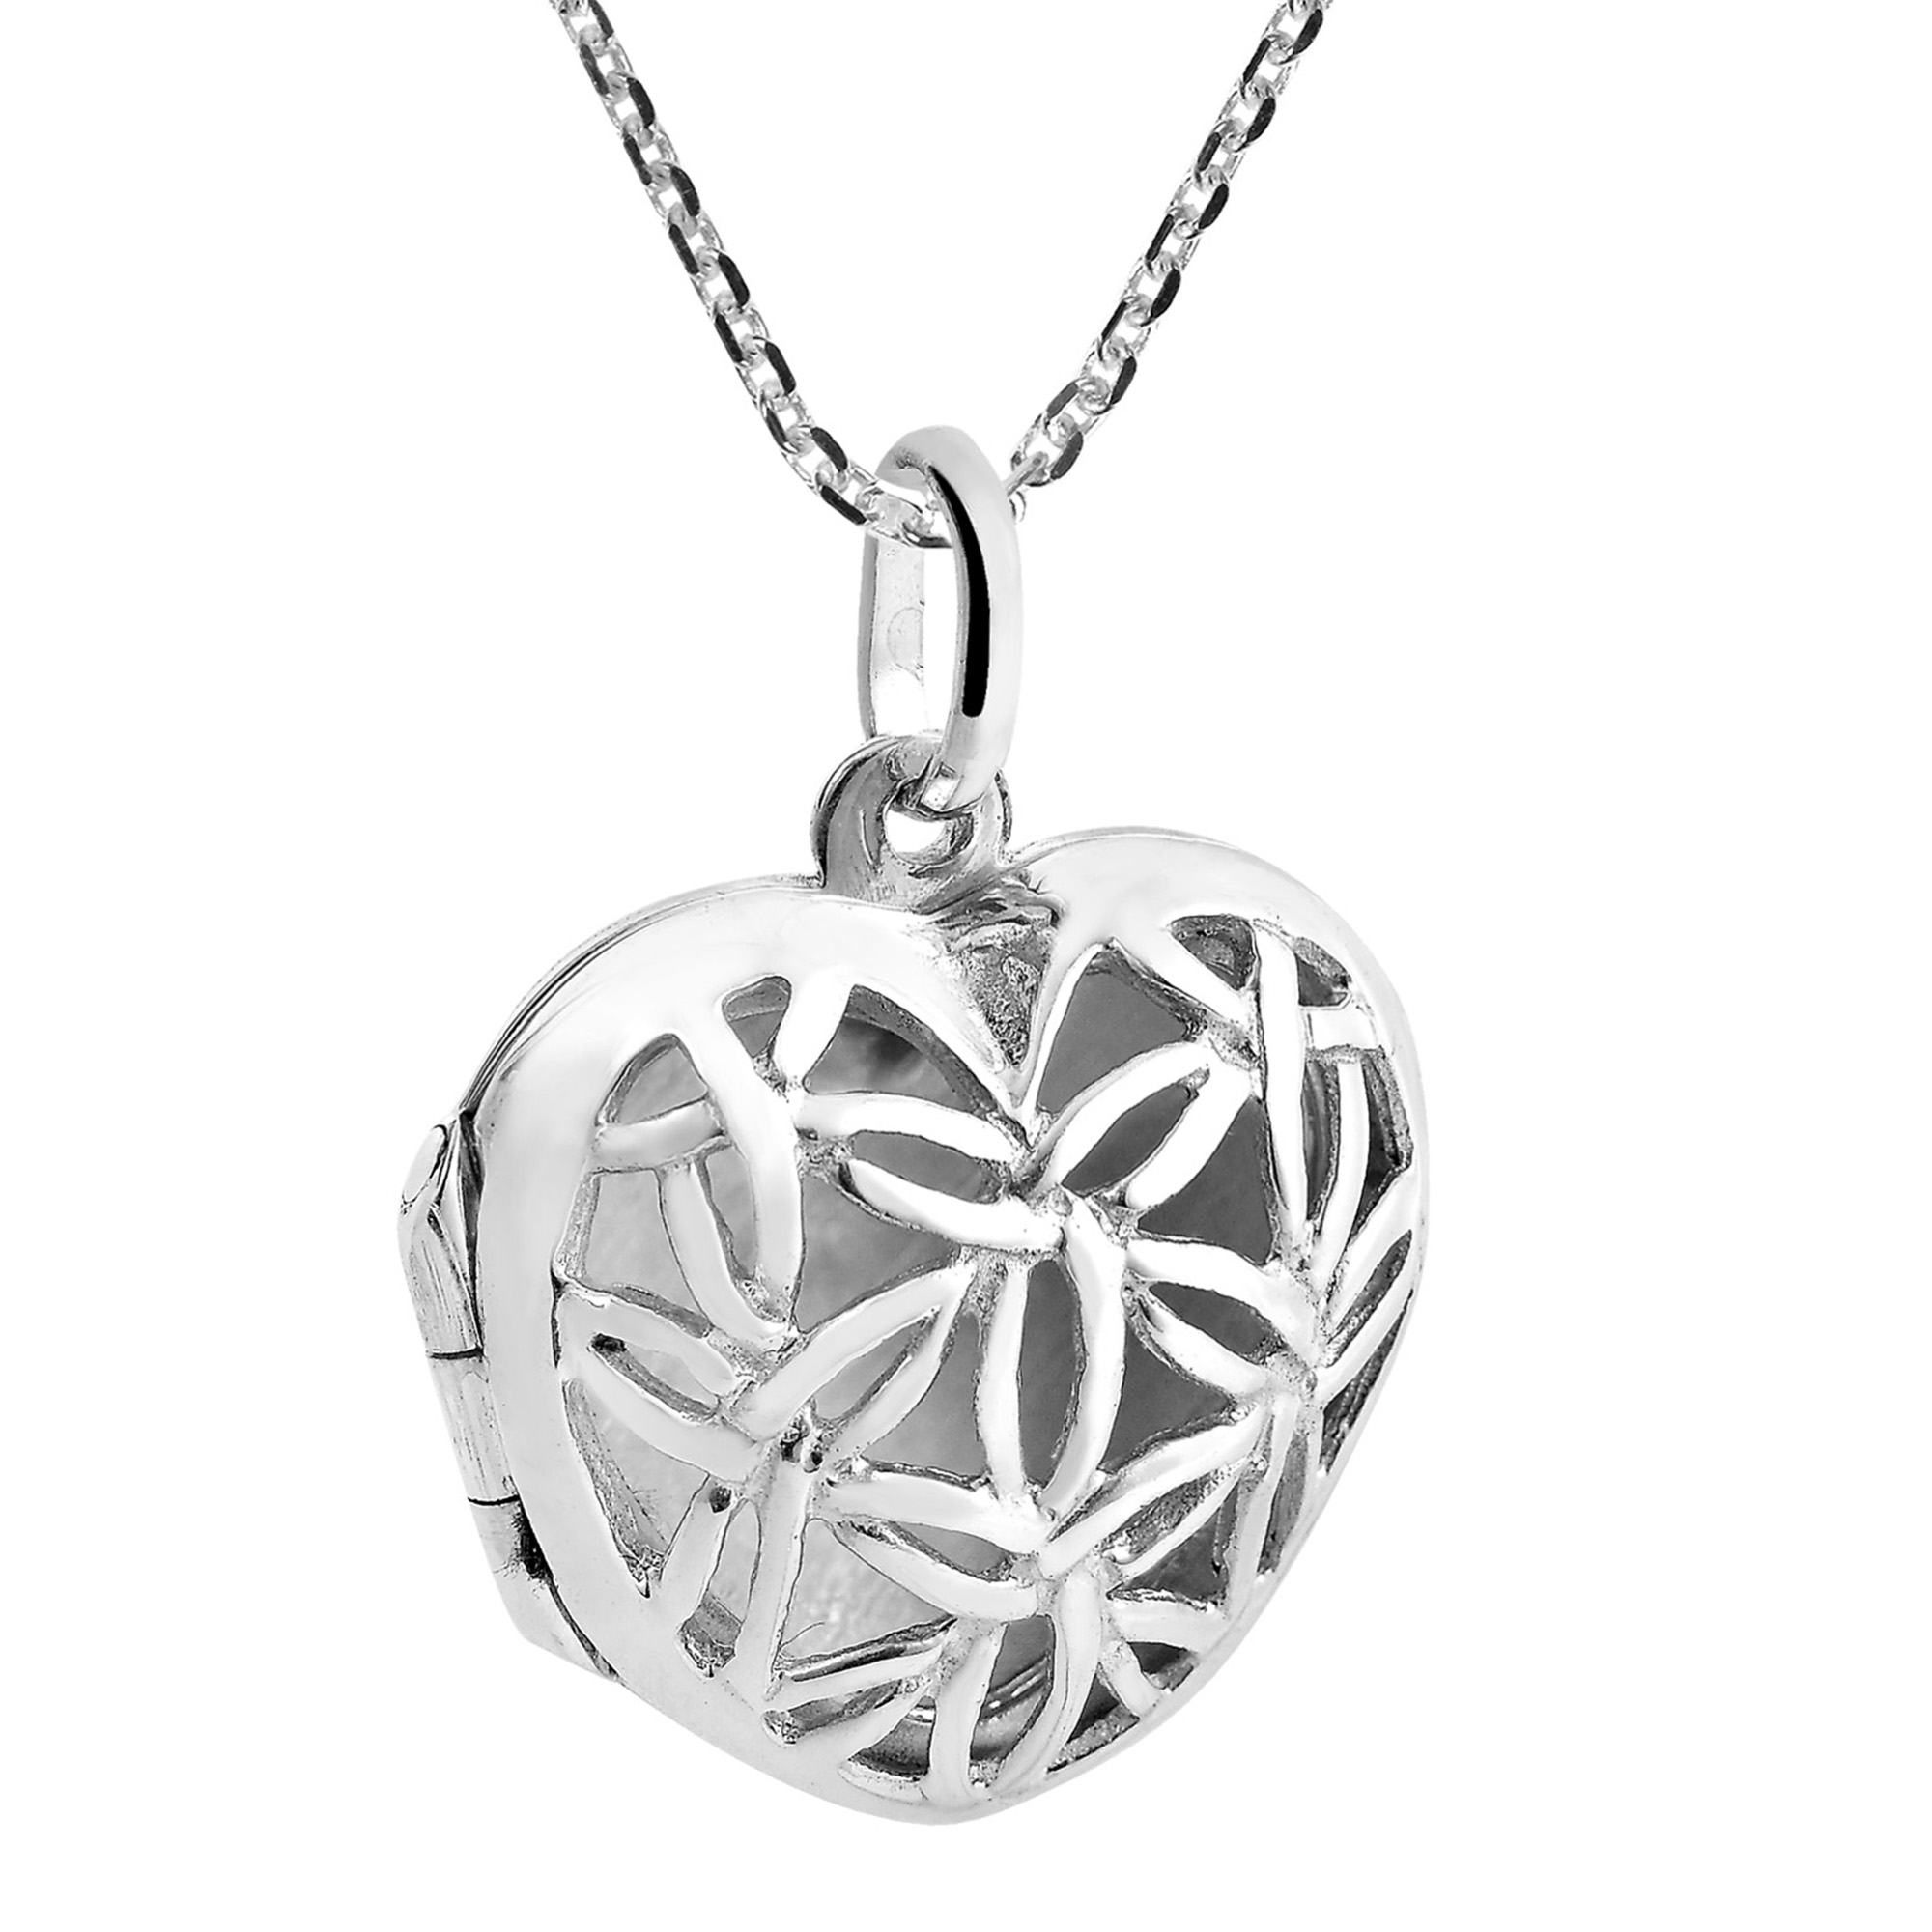 Floral harmony heart locket 925 sterlng silver necklace aeravida this aspects makes the flower of life a symbol of rebirth or new beginnings buycottarizona Choice Image